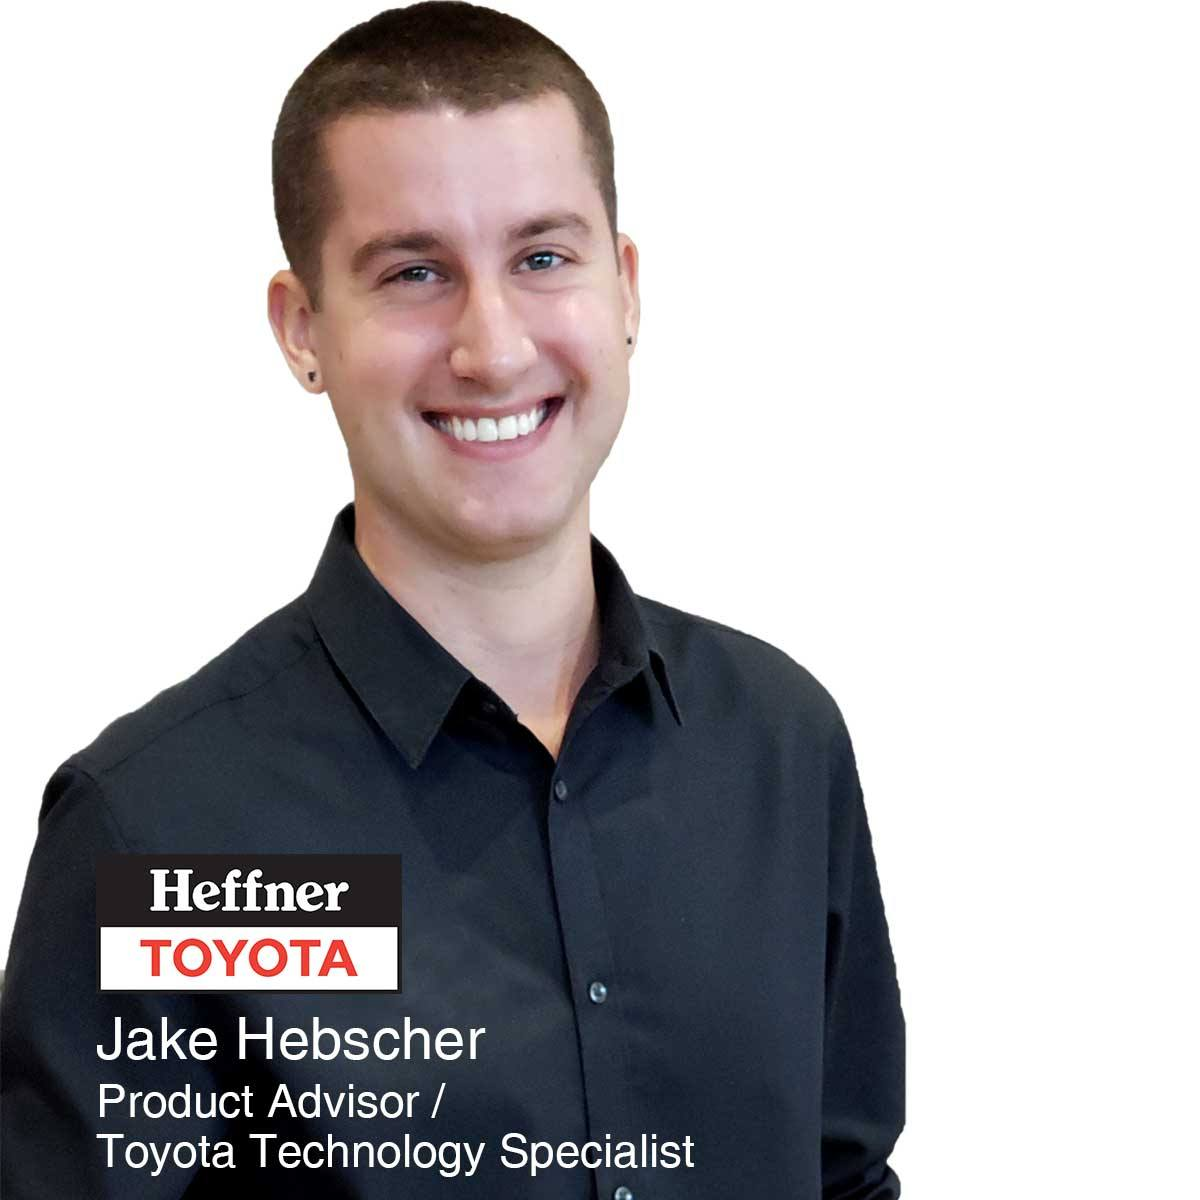 Jake Hebscher - Product Advisor and Toyota Technology Specialist